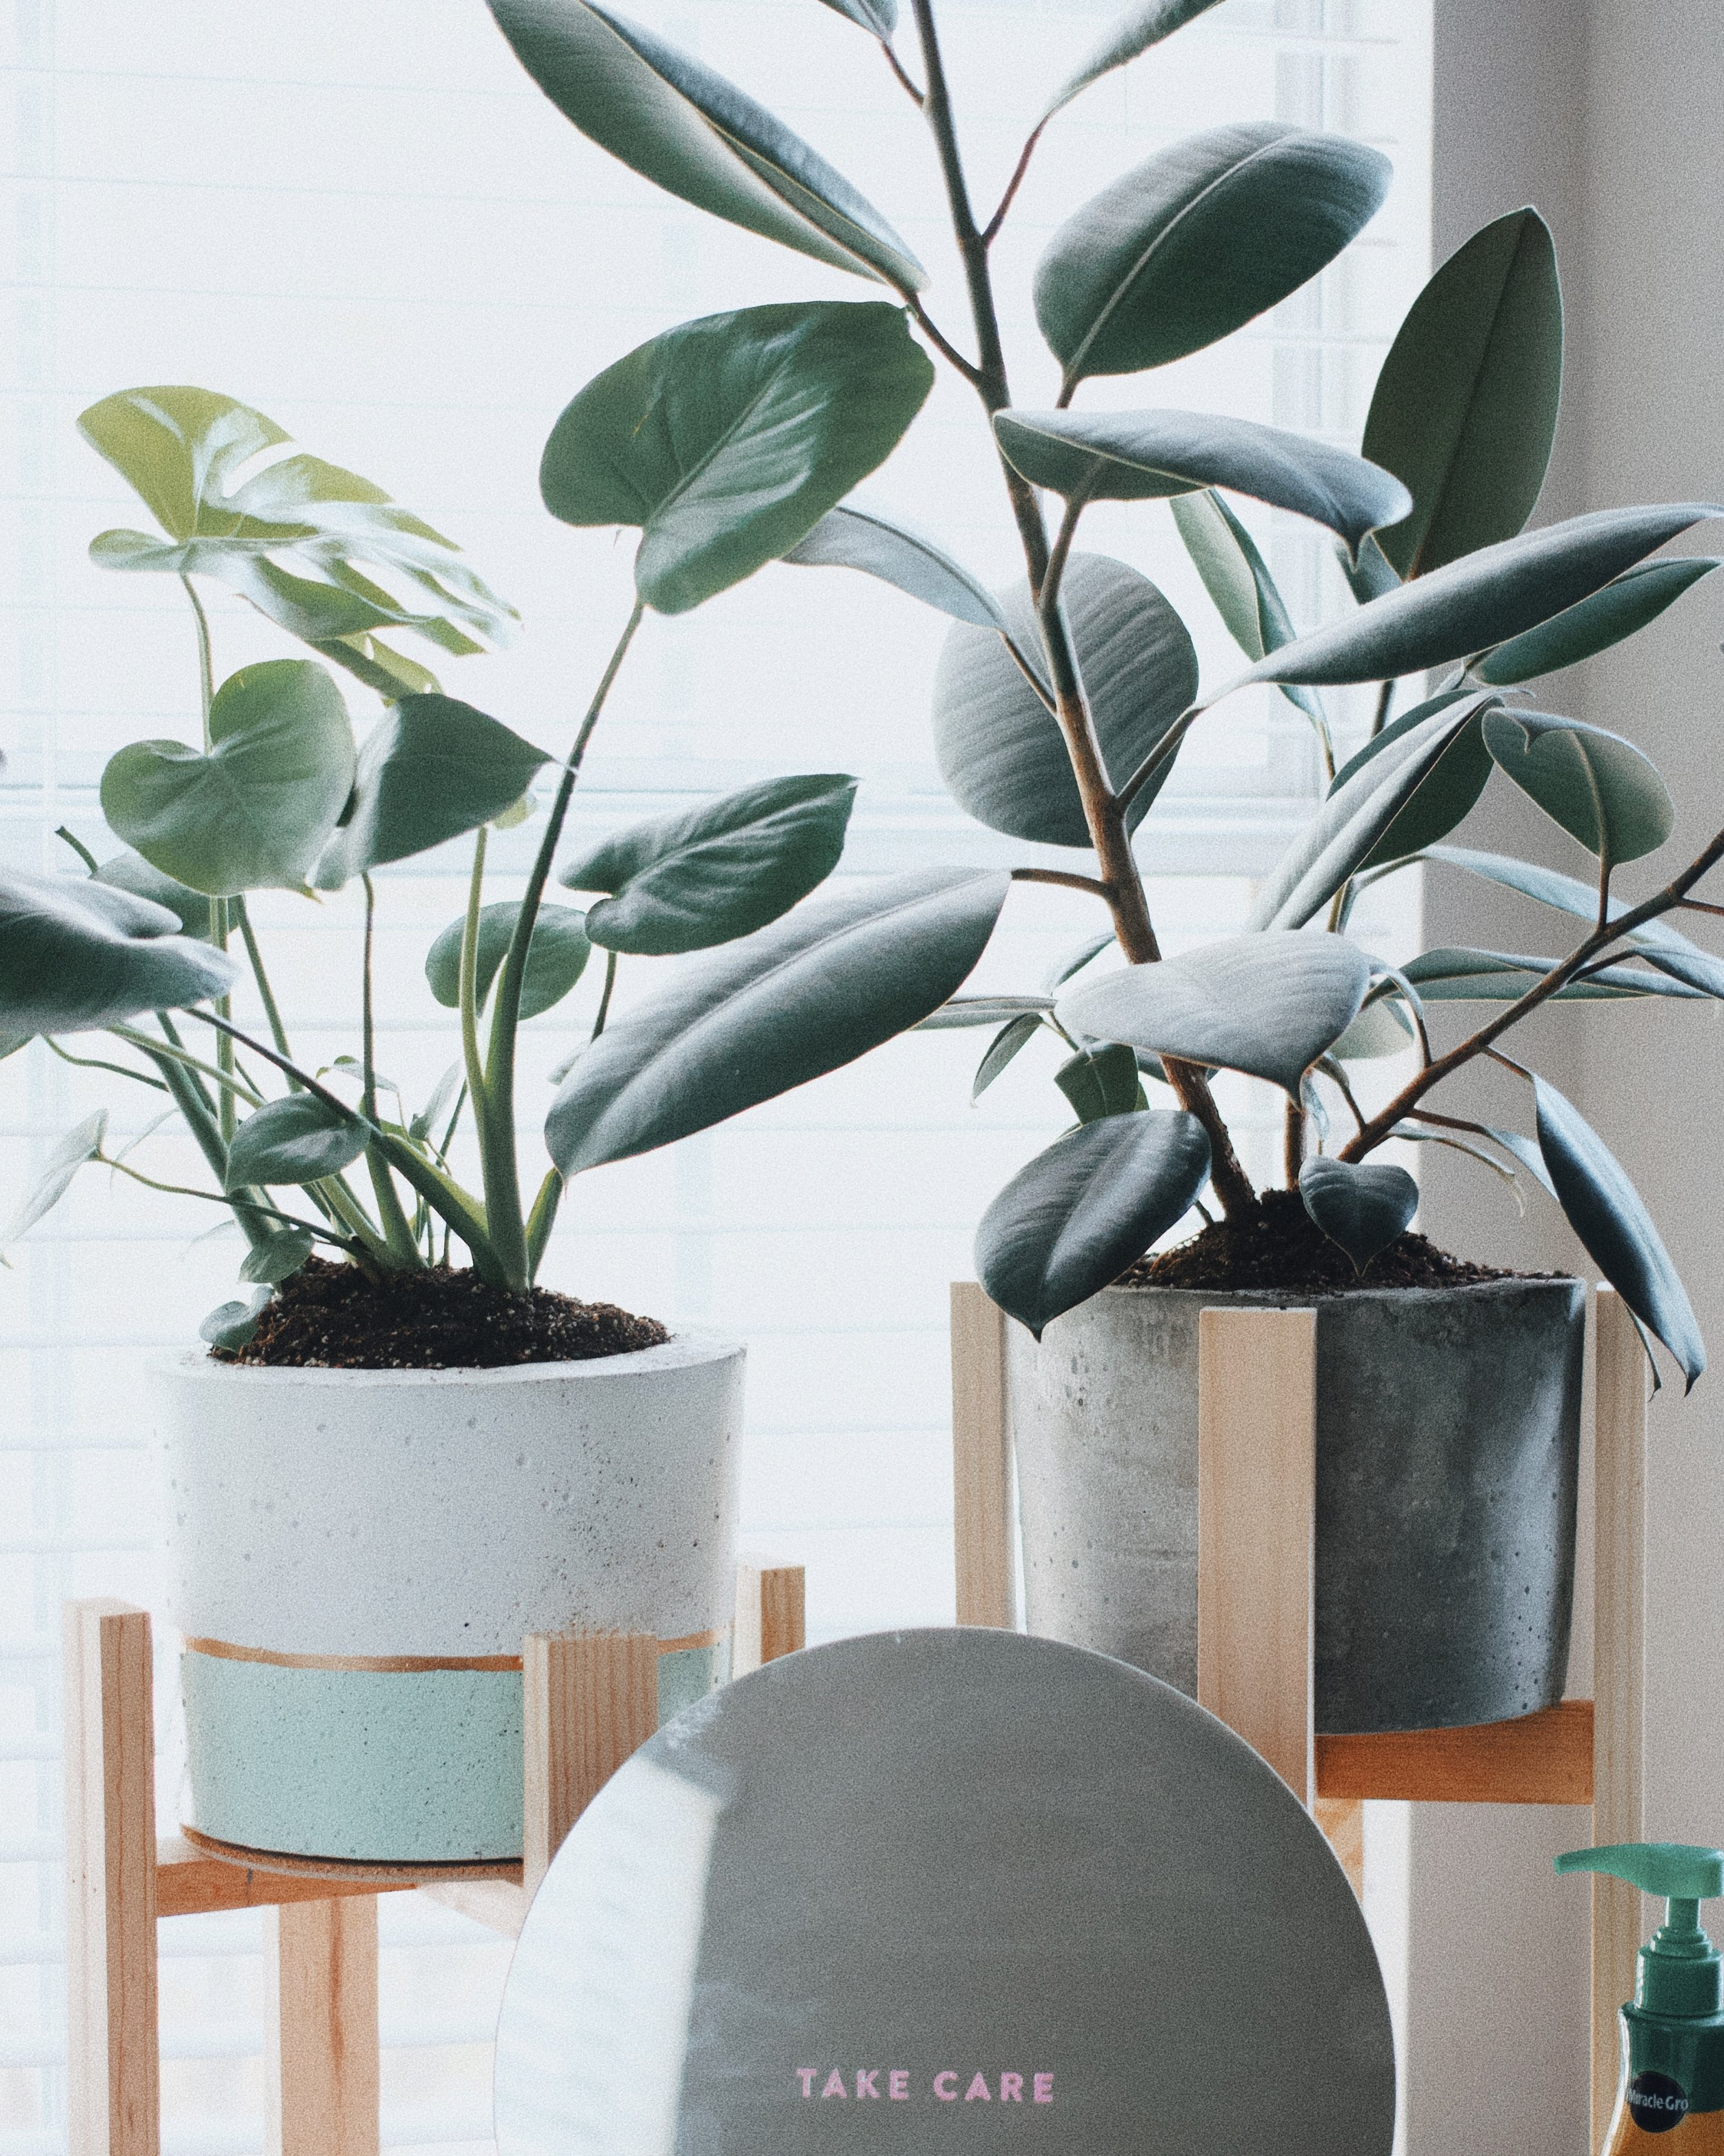 """""""Dusty makes houseplant care fun and easy to understand. I've had fun building my houseplant collection and I feel like I actually know what I am doing!"""" - Lilah Higgins, proud fiddle leaf fig momma"""